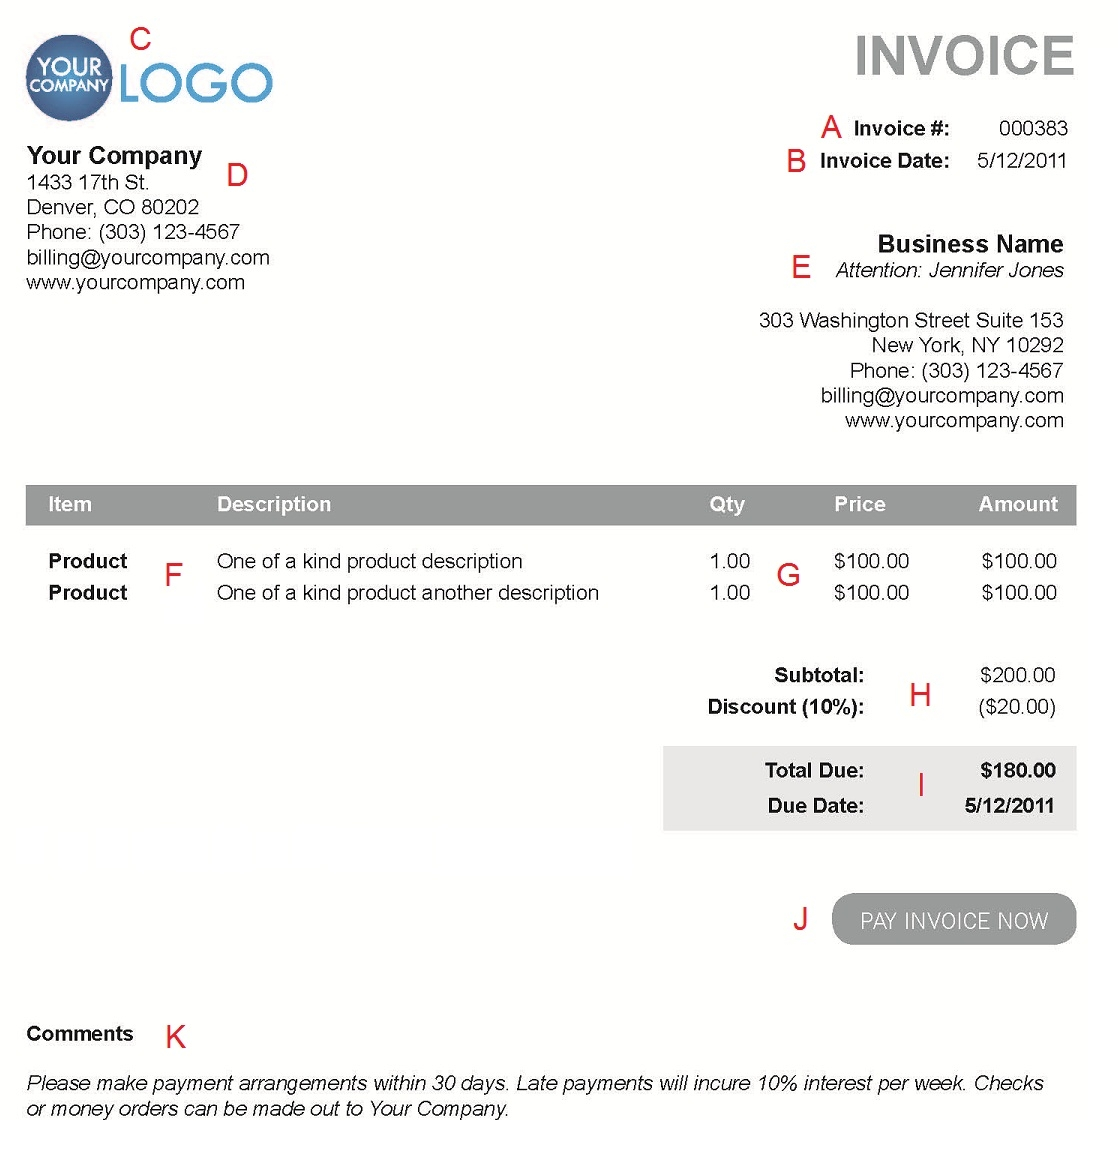 late invoice payment late payment invoice template mdxar 1118 X 1166